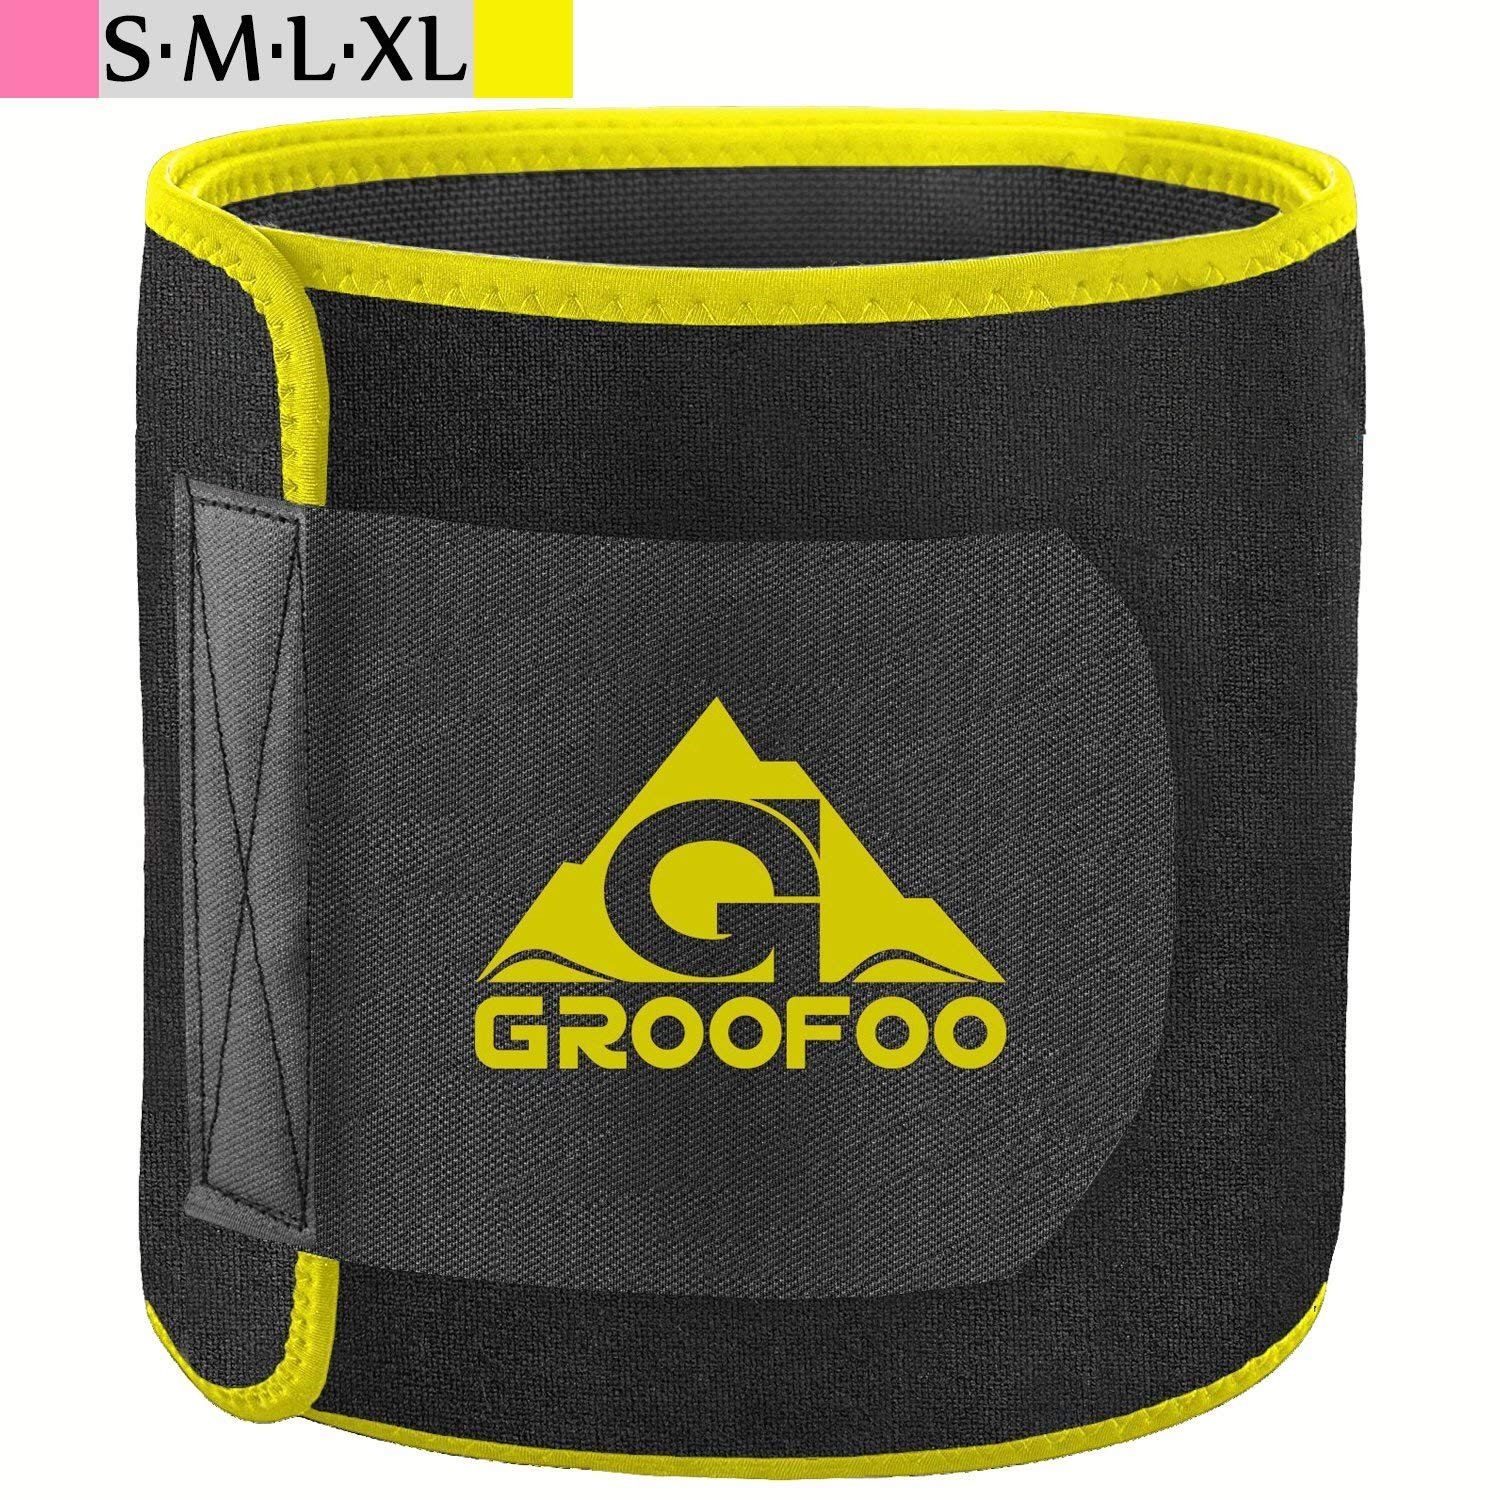 GROOFOO Waist Trimmer Belt, Adjustable Waist Trainer Band Belly Weight Loss Wrap for Women & Men, Stretchy Material, Powerful Velcro - Yellow/M